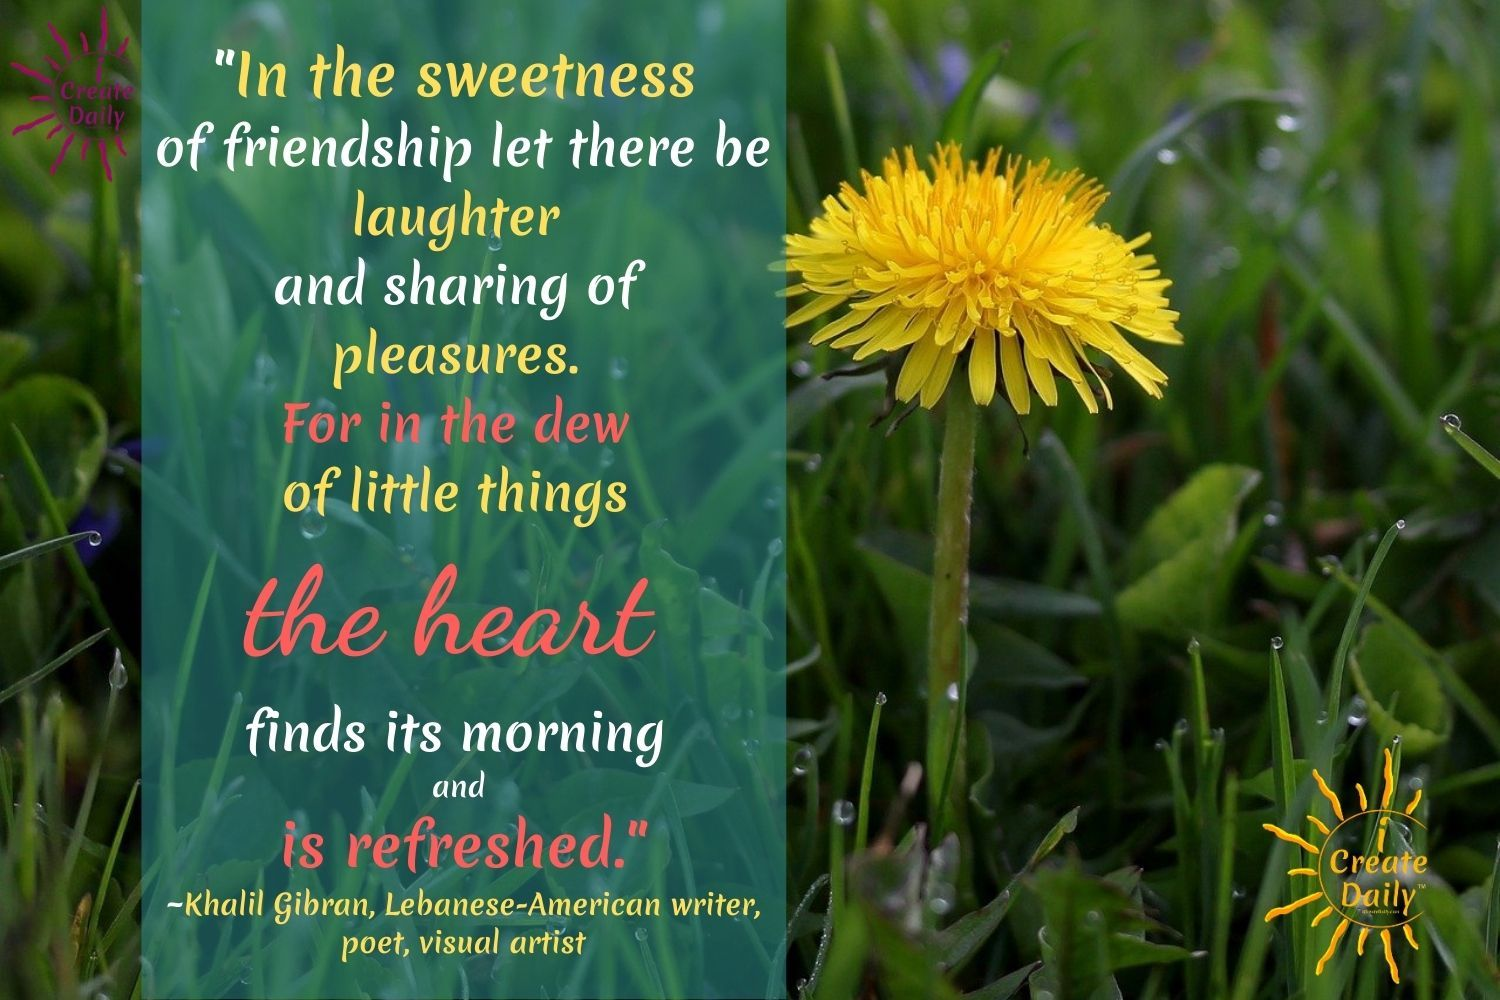 "KAHLIL GIBRAN QUOTE ON FRIENDSHIP: ""In the sweetness of friendship let there be laughter and sharing of pleasures. For in the dew of little things the heart finds its morning and is refreshed."" ~Khalil Gibran, Lebanese-American writer, poet, visual artist, 1883-1931 #Inspirational #FriendshipQuote #LaughterQuote #Positivity #iCreateDaily #KhalilGibranQuote #Friendship"